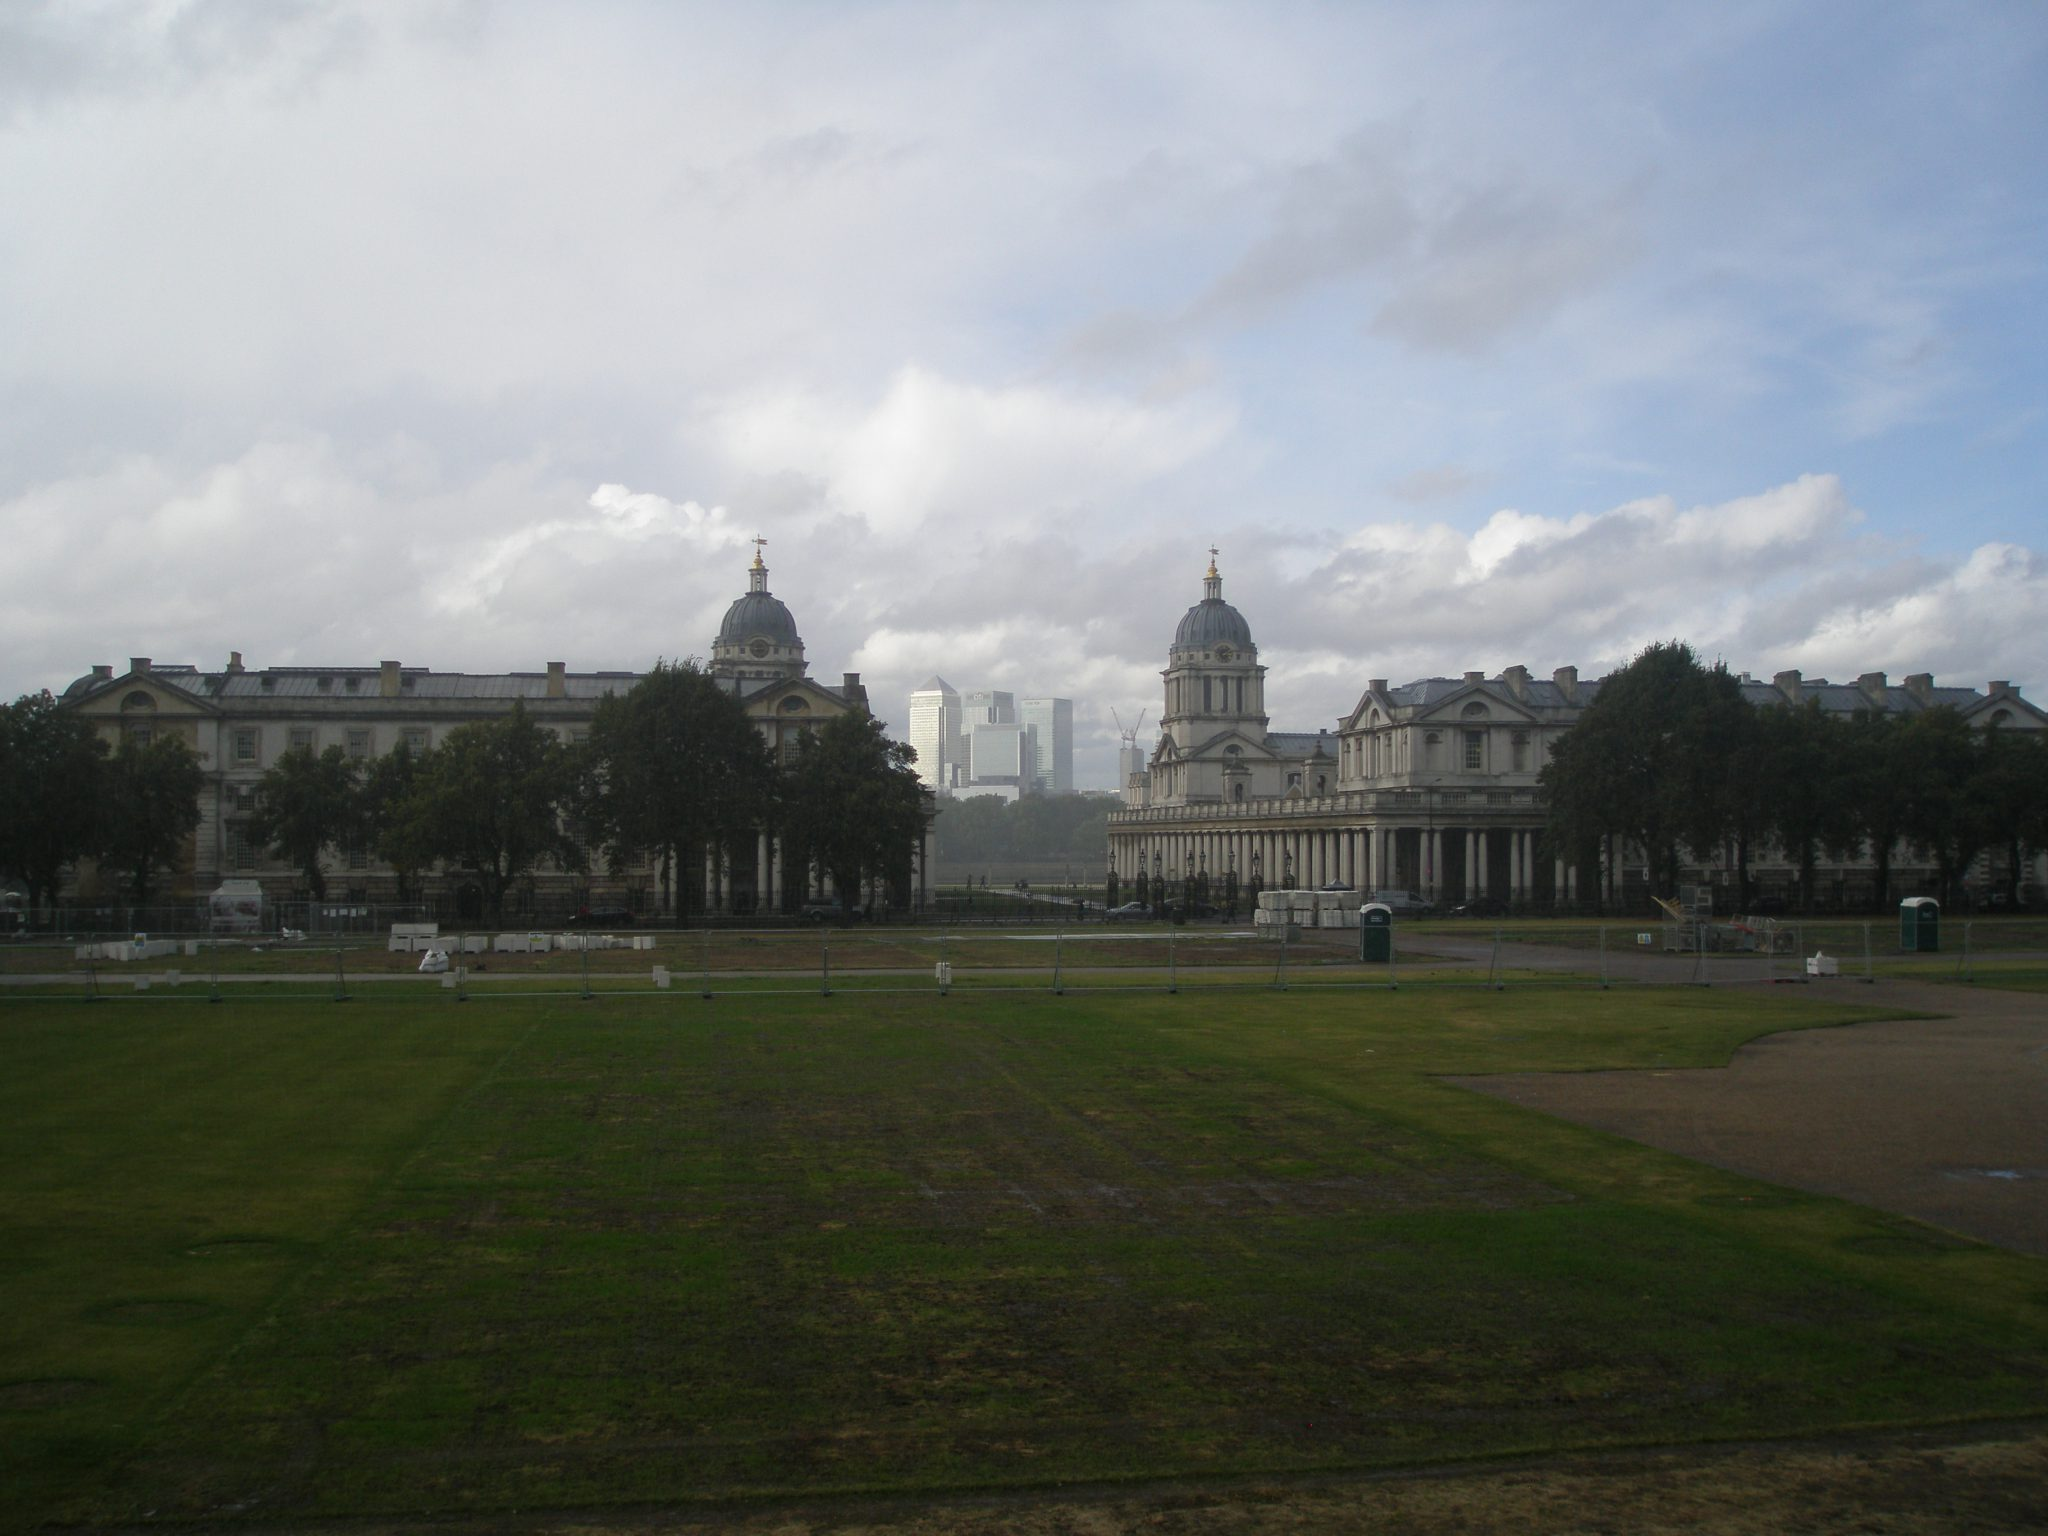 Old Royal Naval College, with Canary Wharf in the distance